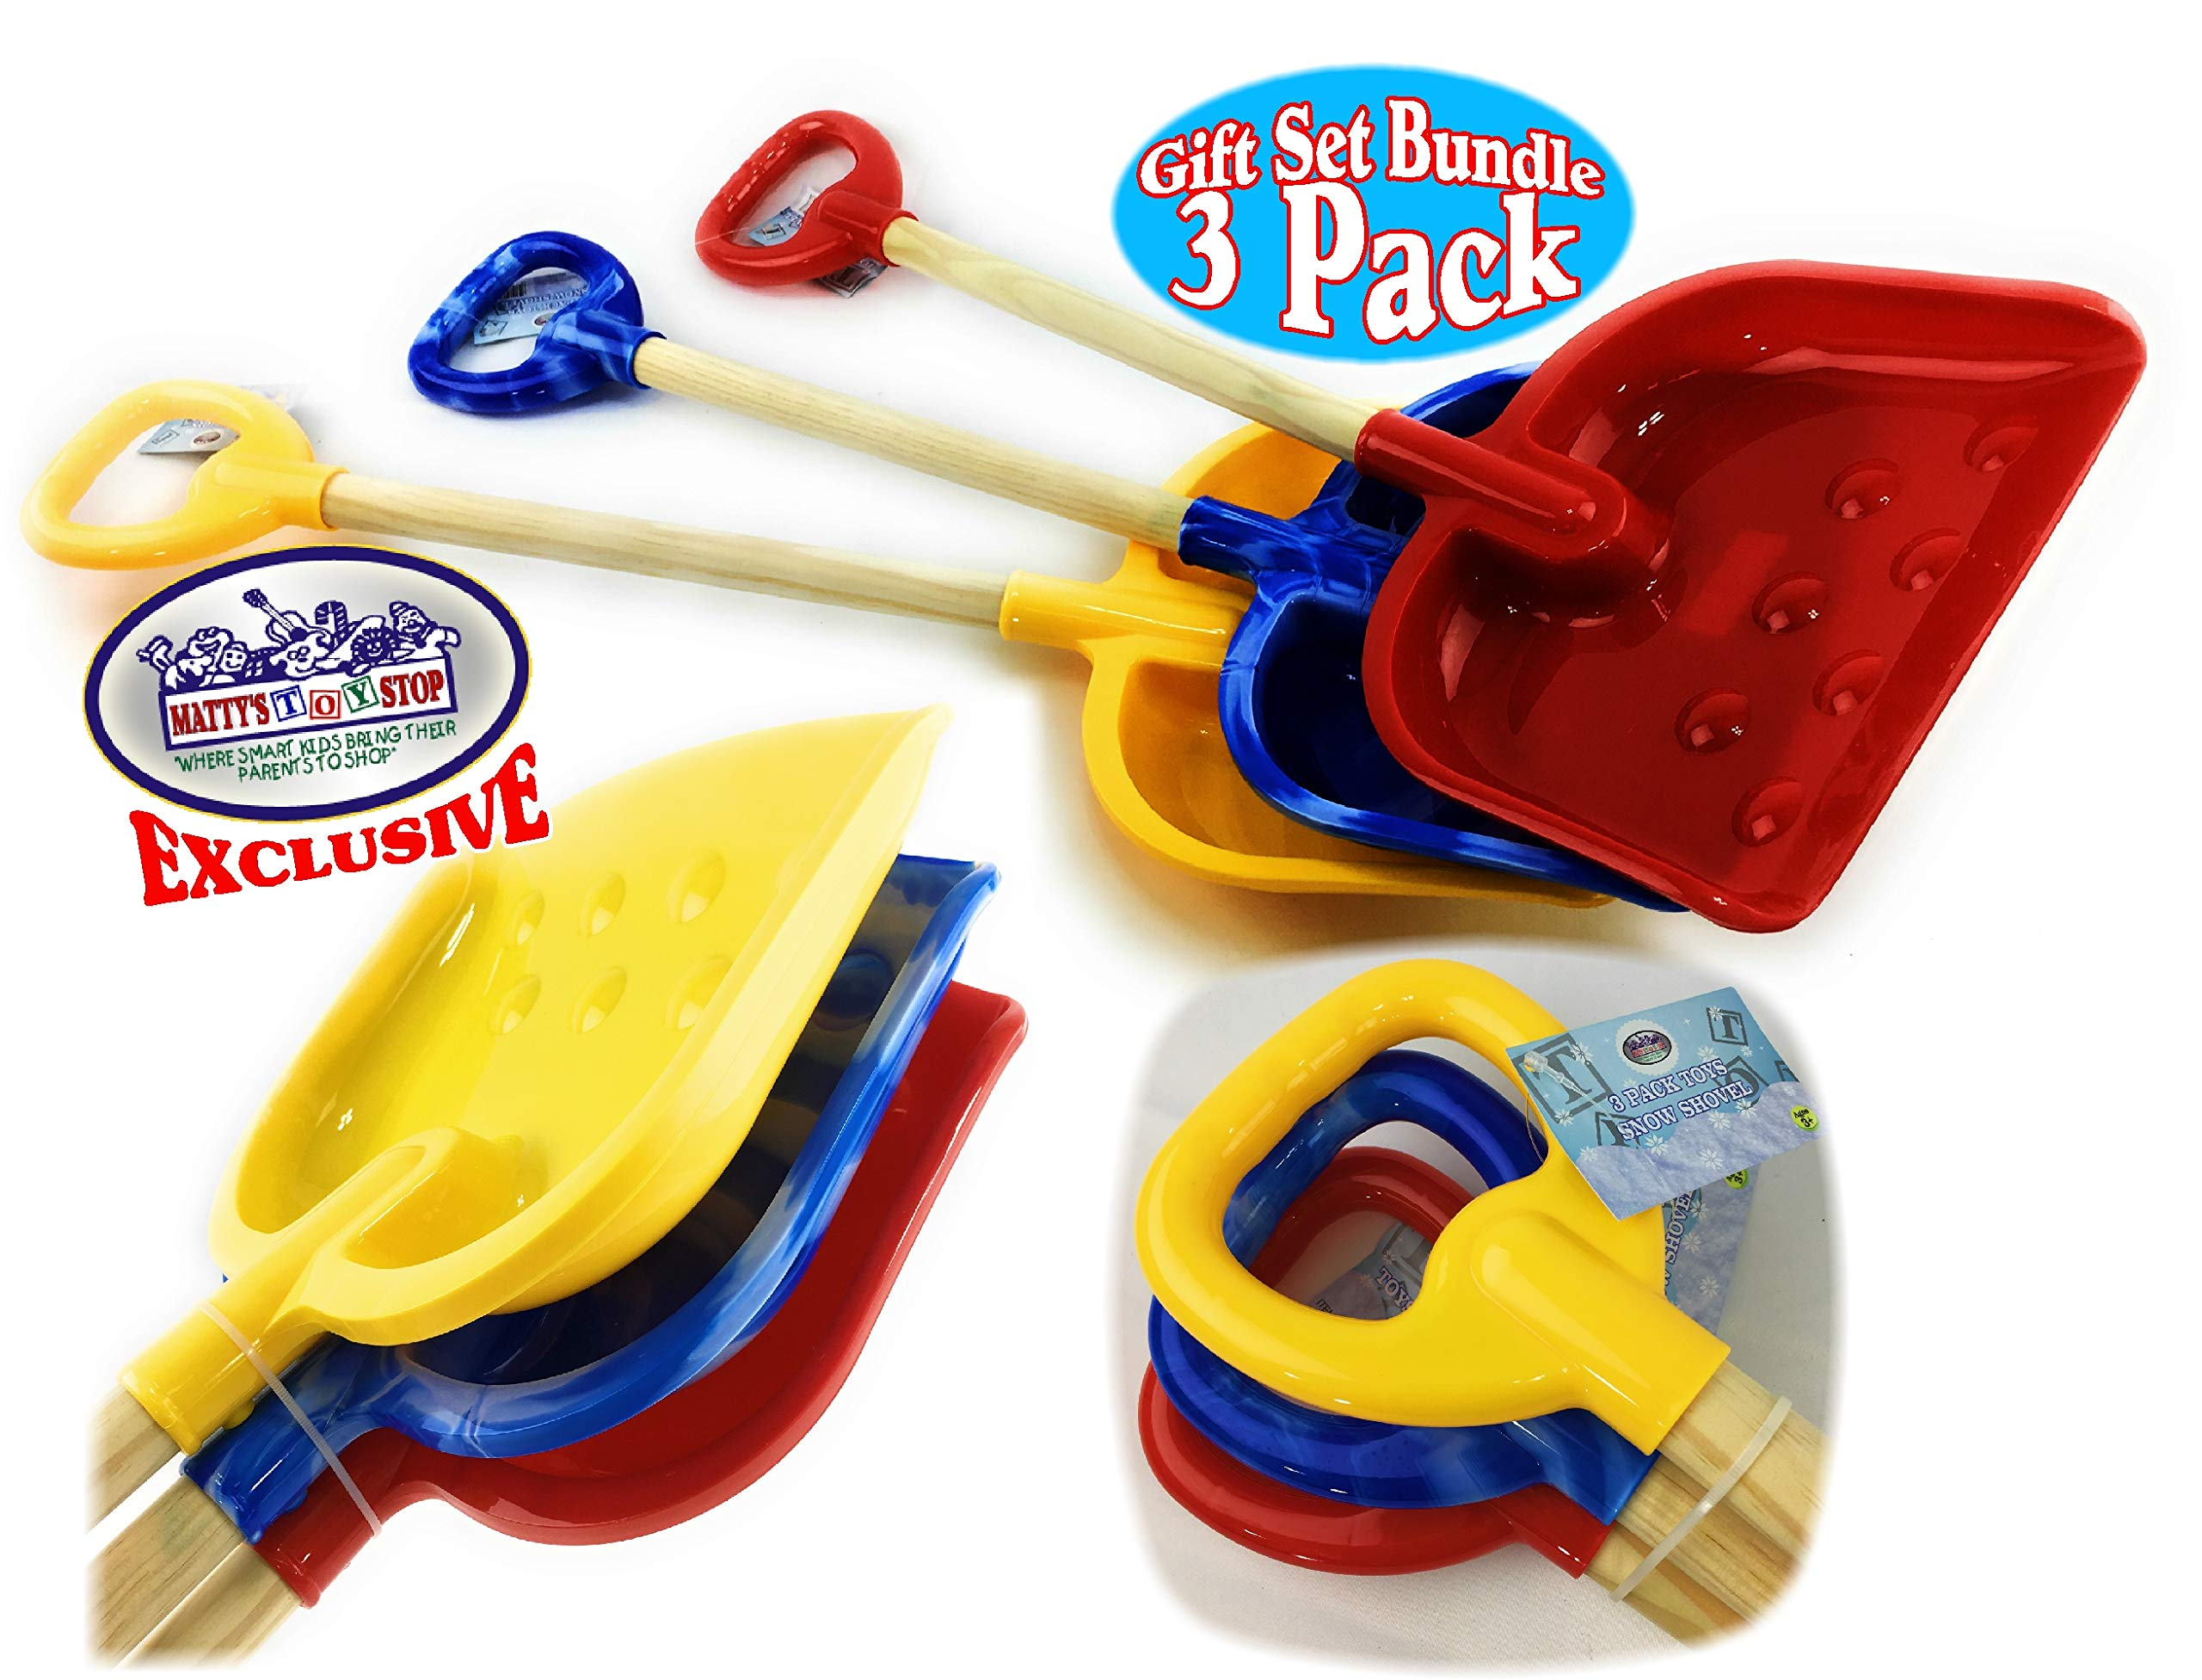 Matty's Toy Stop 28'' Heavy Duty Wooden Snow Shovels with Plastic Scoop & Handle for Kids Red, Yellow & Blue Swirl Gift Set Bundle - 3 Pack by Matty's Toy Stop (Image #2)